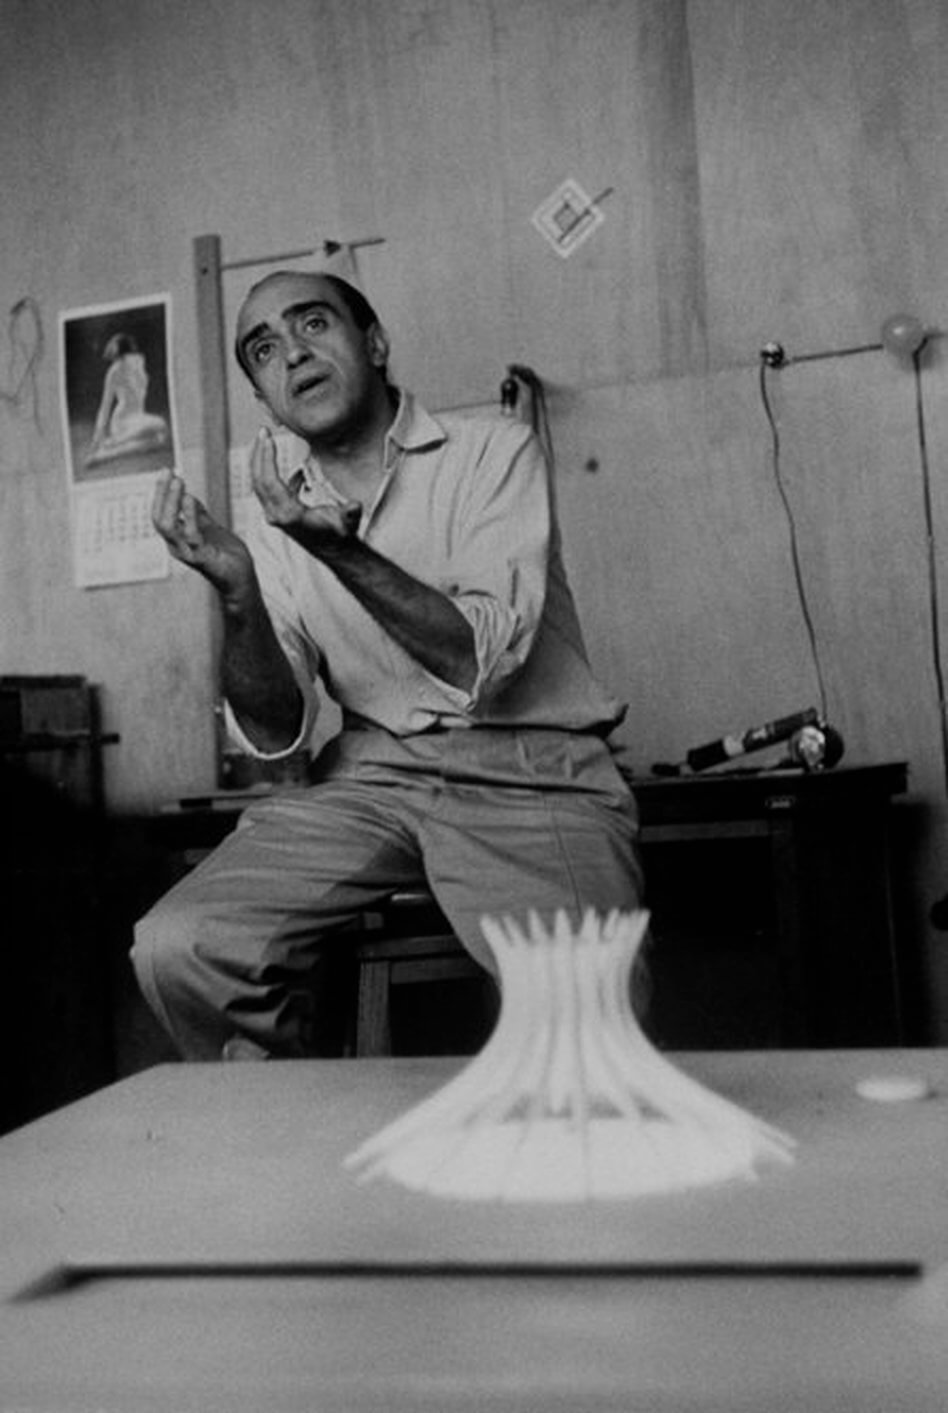 Architect Oscar Niemeyer in the shack he used for office while building Brazil's new capitol.  (Photo by Frank Scherschel//Time Life Pictures/Getty Images)